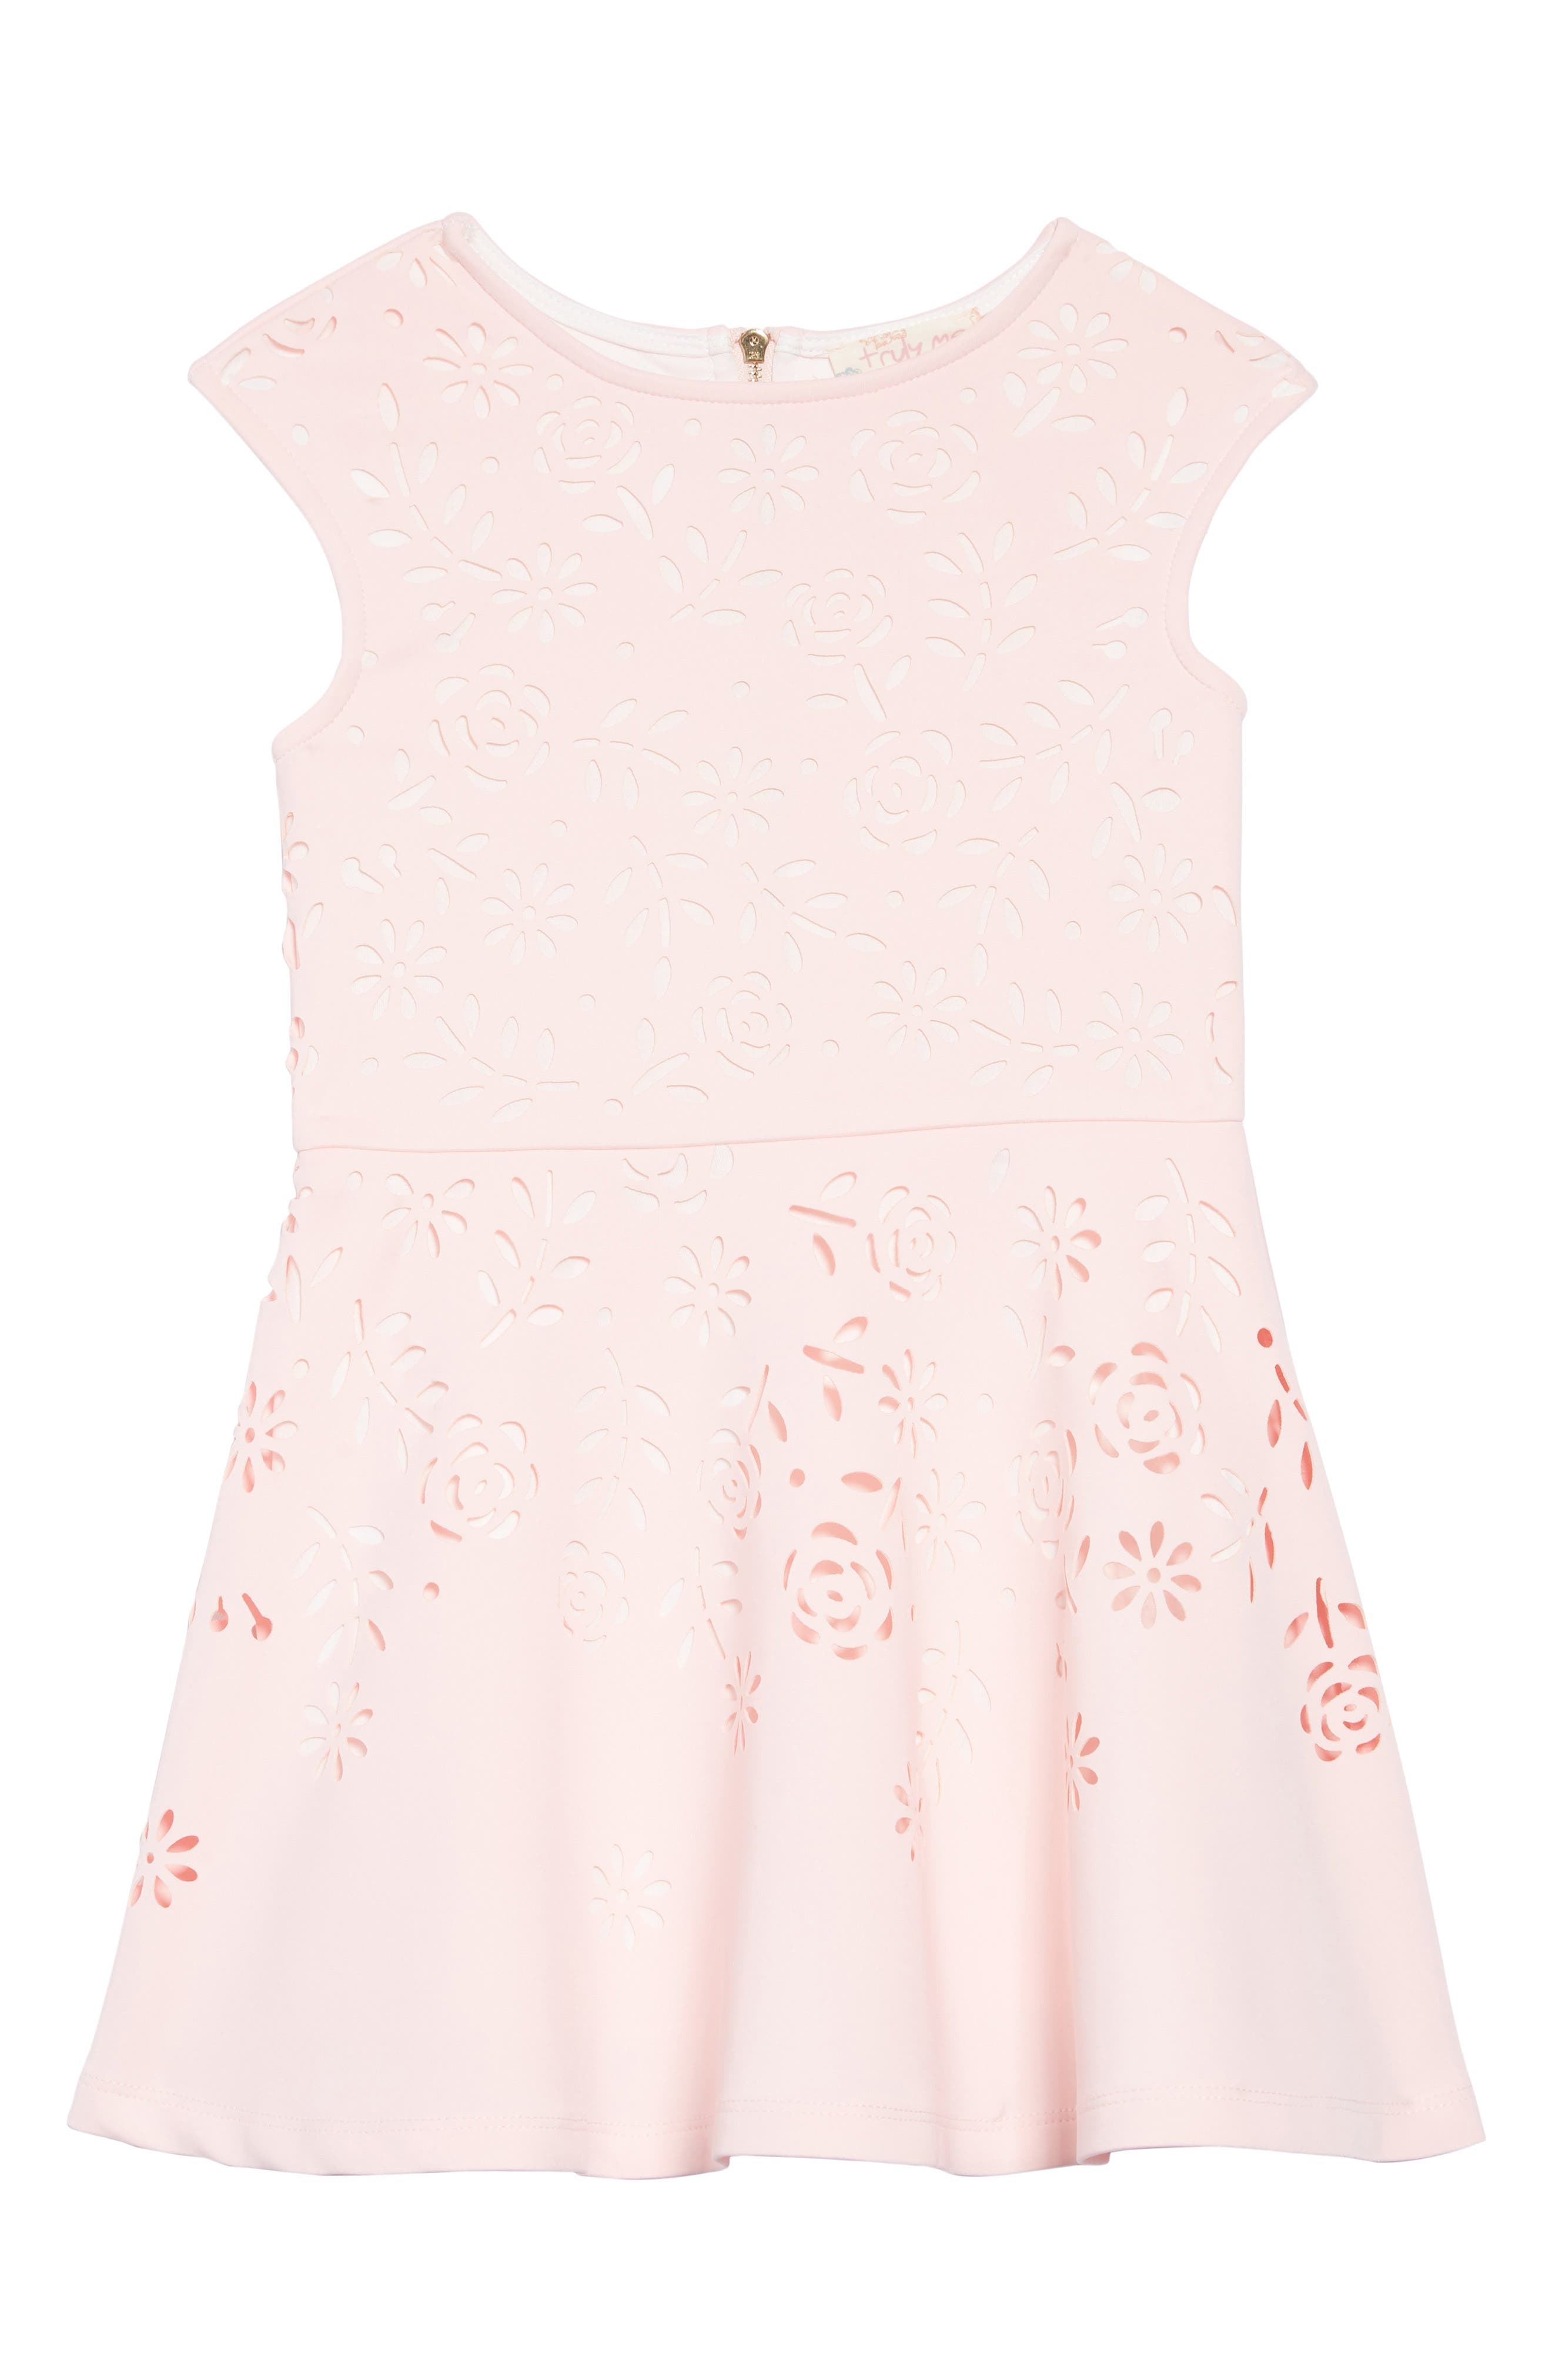 TRULY ME Laser Cut Floral Fit & Flare Dress, Main, color, PINK-WHITE